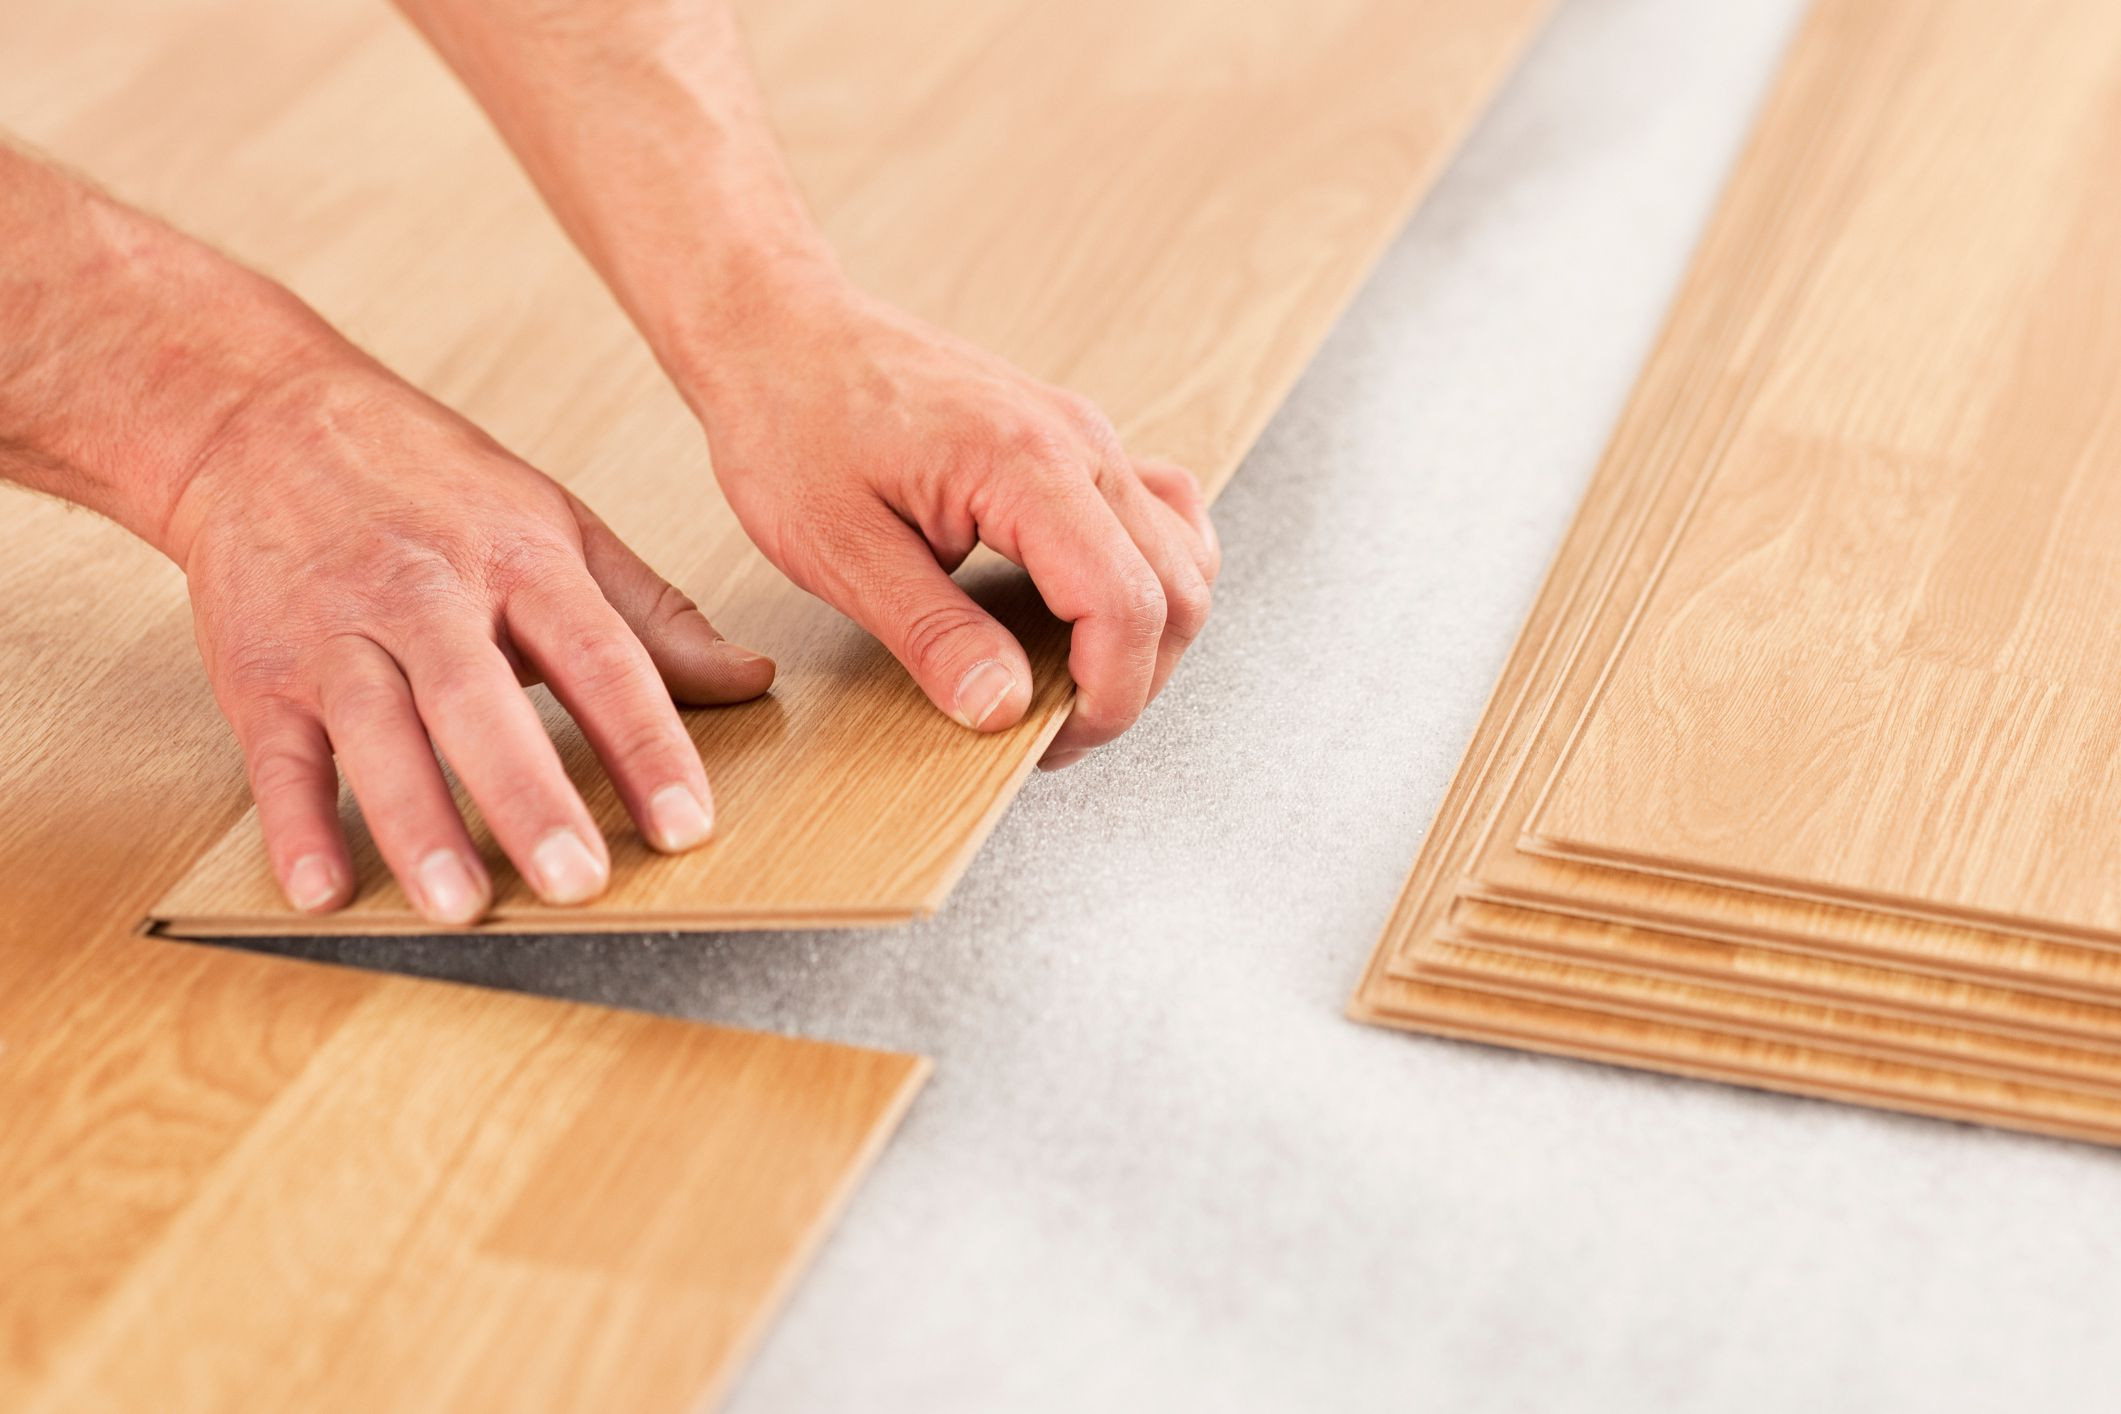 hardwood floor foam tiles of laminate underlayment pros and cons inside laminate floor install gettyimages 154961561 588816495f9b58bdb3da1a02